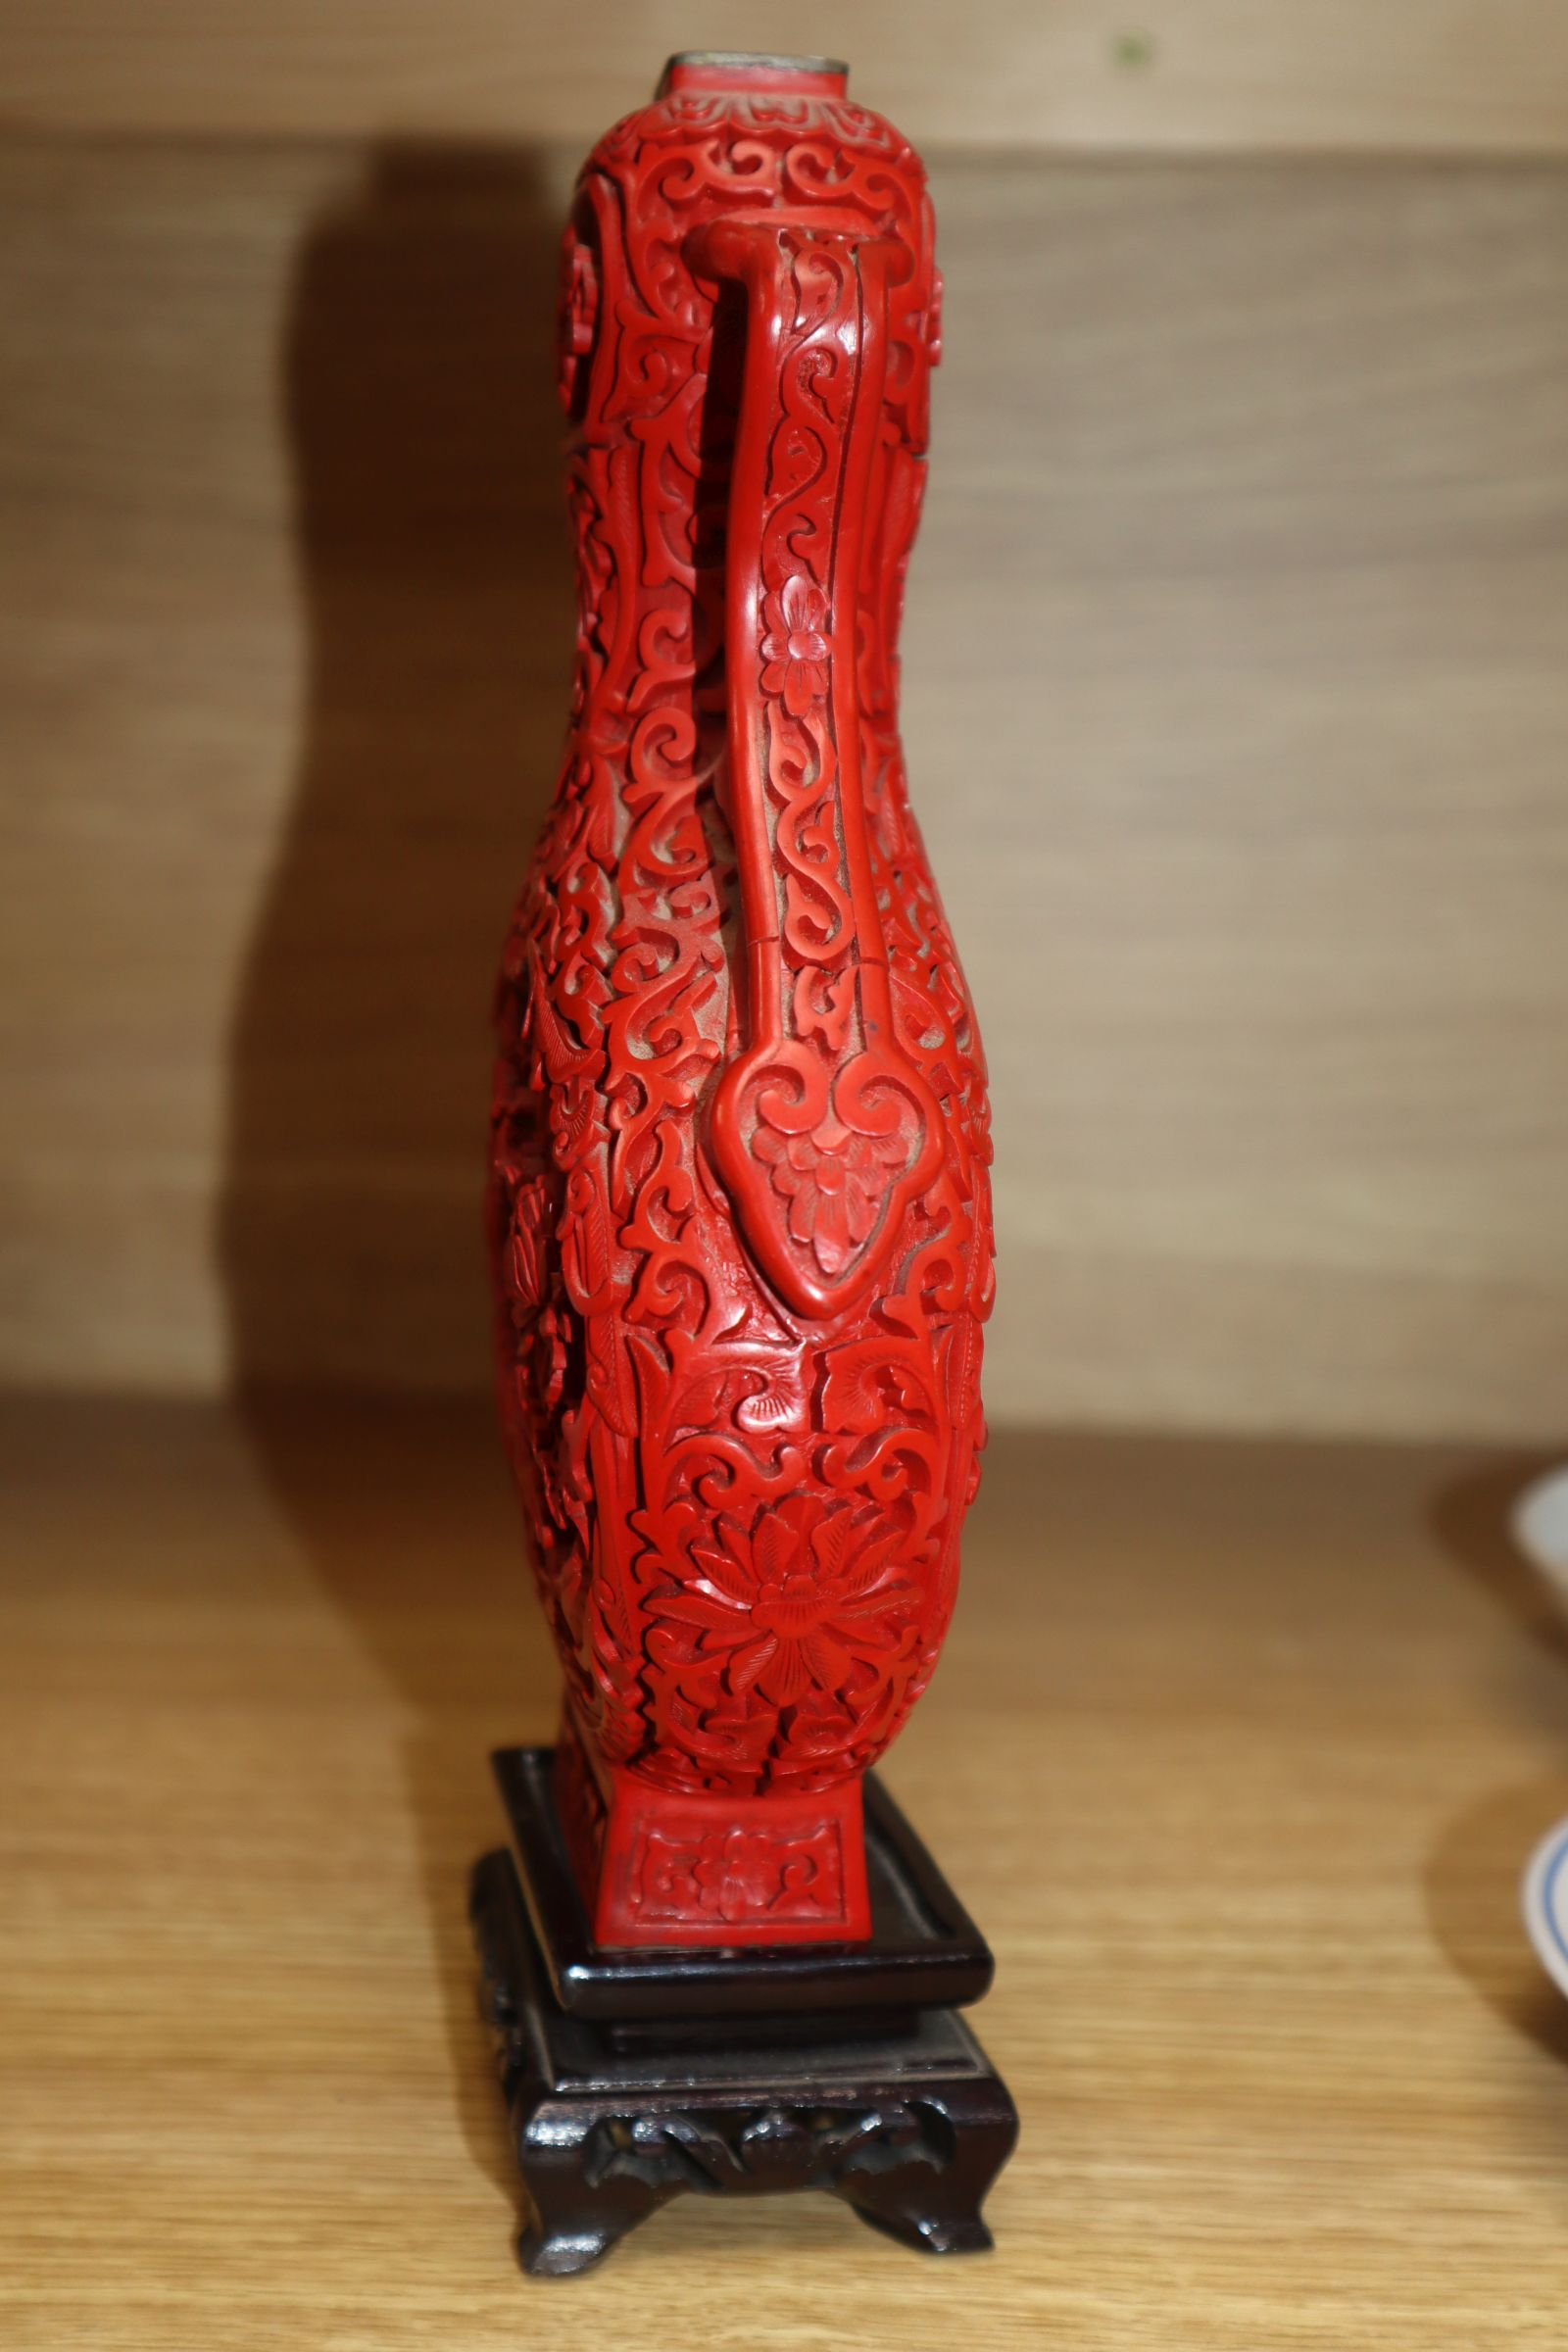 Lot 83 - A cinnabar lacquer vase on associated hardwood stand height 20.5cm excluding stand